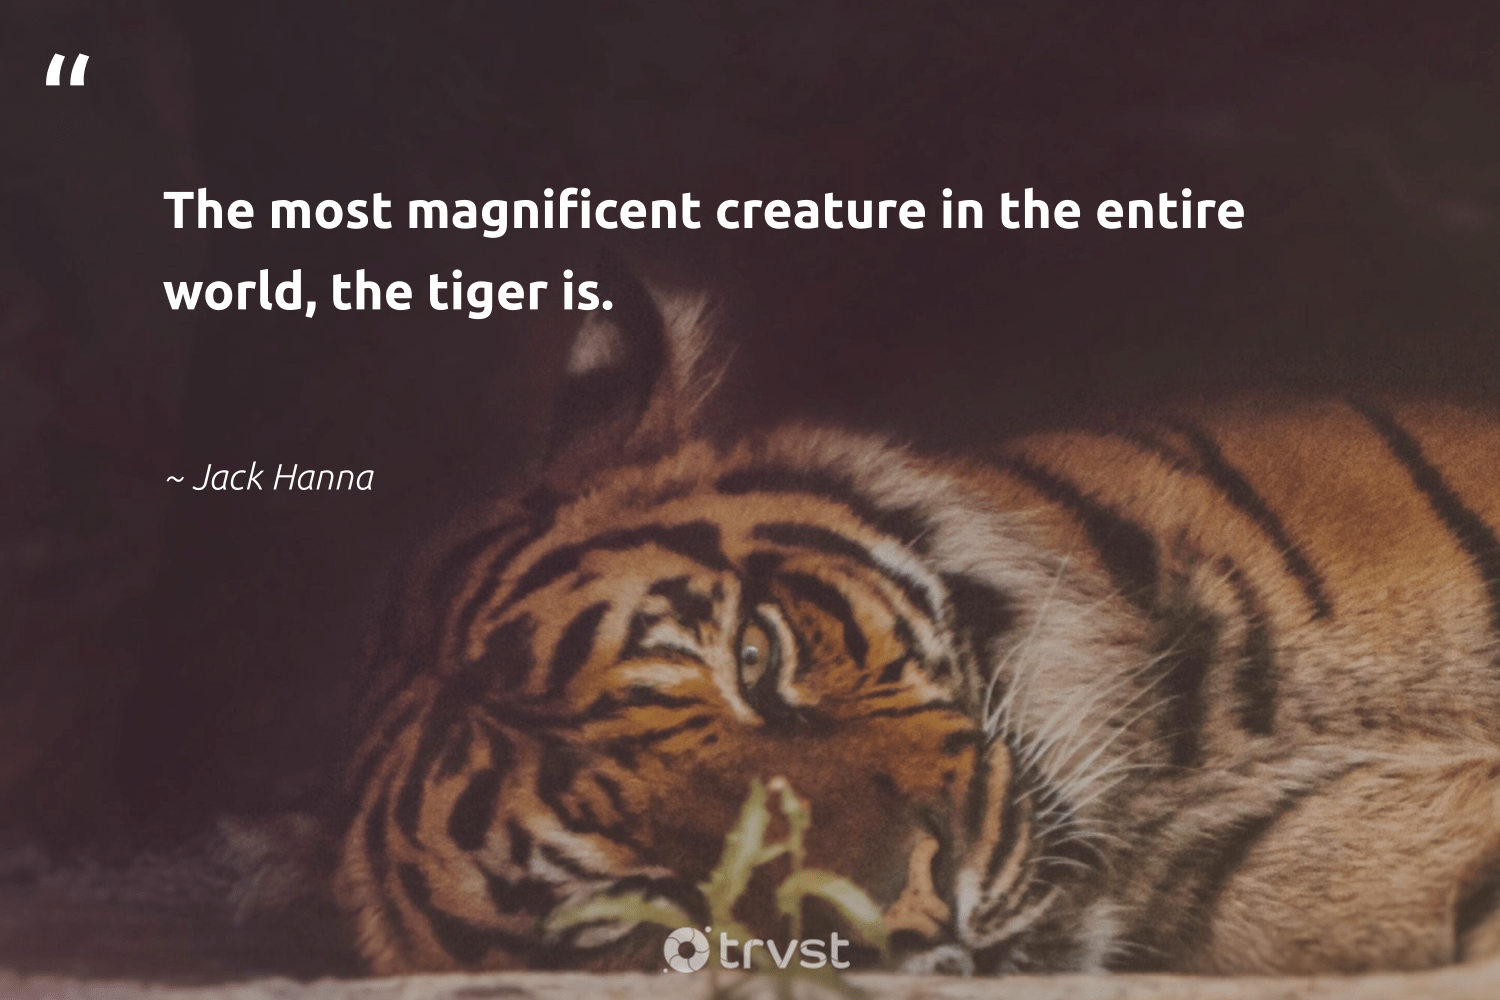 """The most magnificent creature in the entire world, the tiger is.""  - Jack Hanna #trvst #quotes #tiger #tigers #gogreen #protectnature #collectiveaction #majesticwildlife #dosomething #ourplanetdaily #socialimpact #amazingworld"